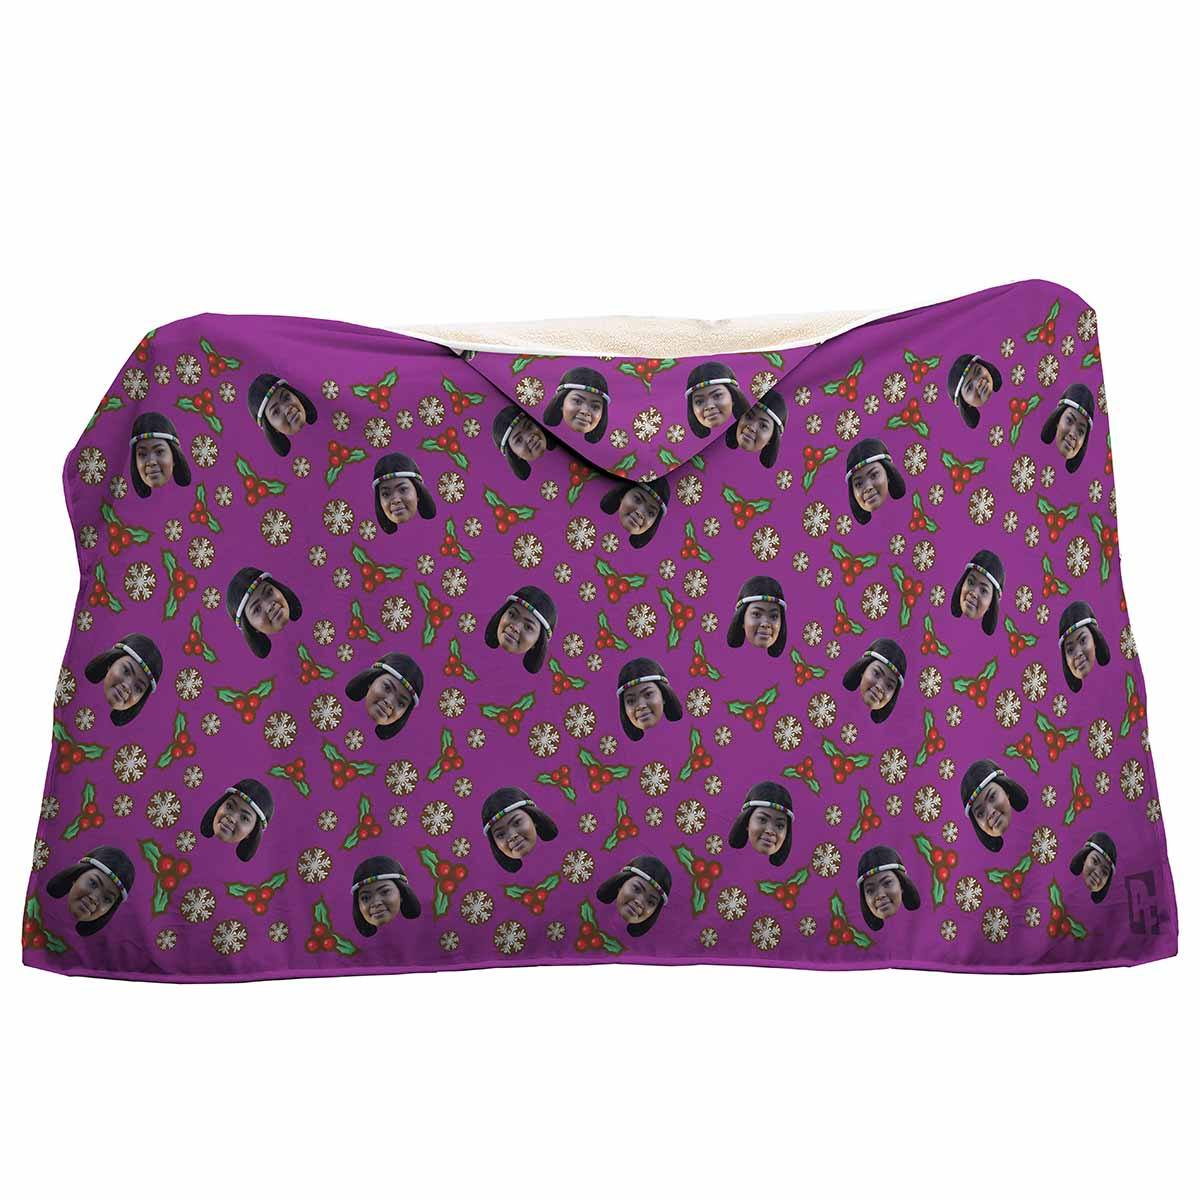 purple Mistletoe hooded blanket personalized with photo of face printed on it